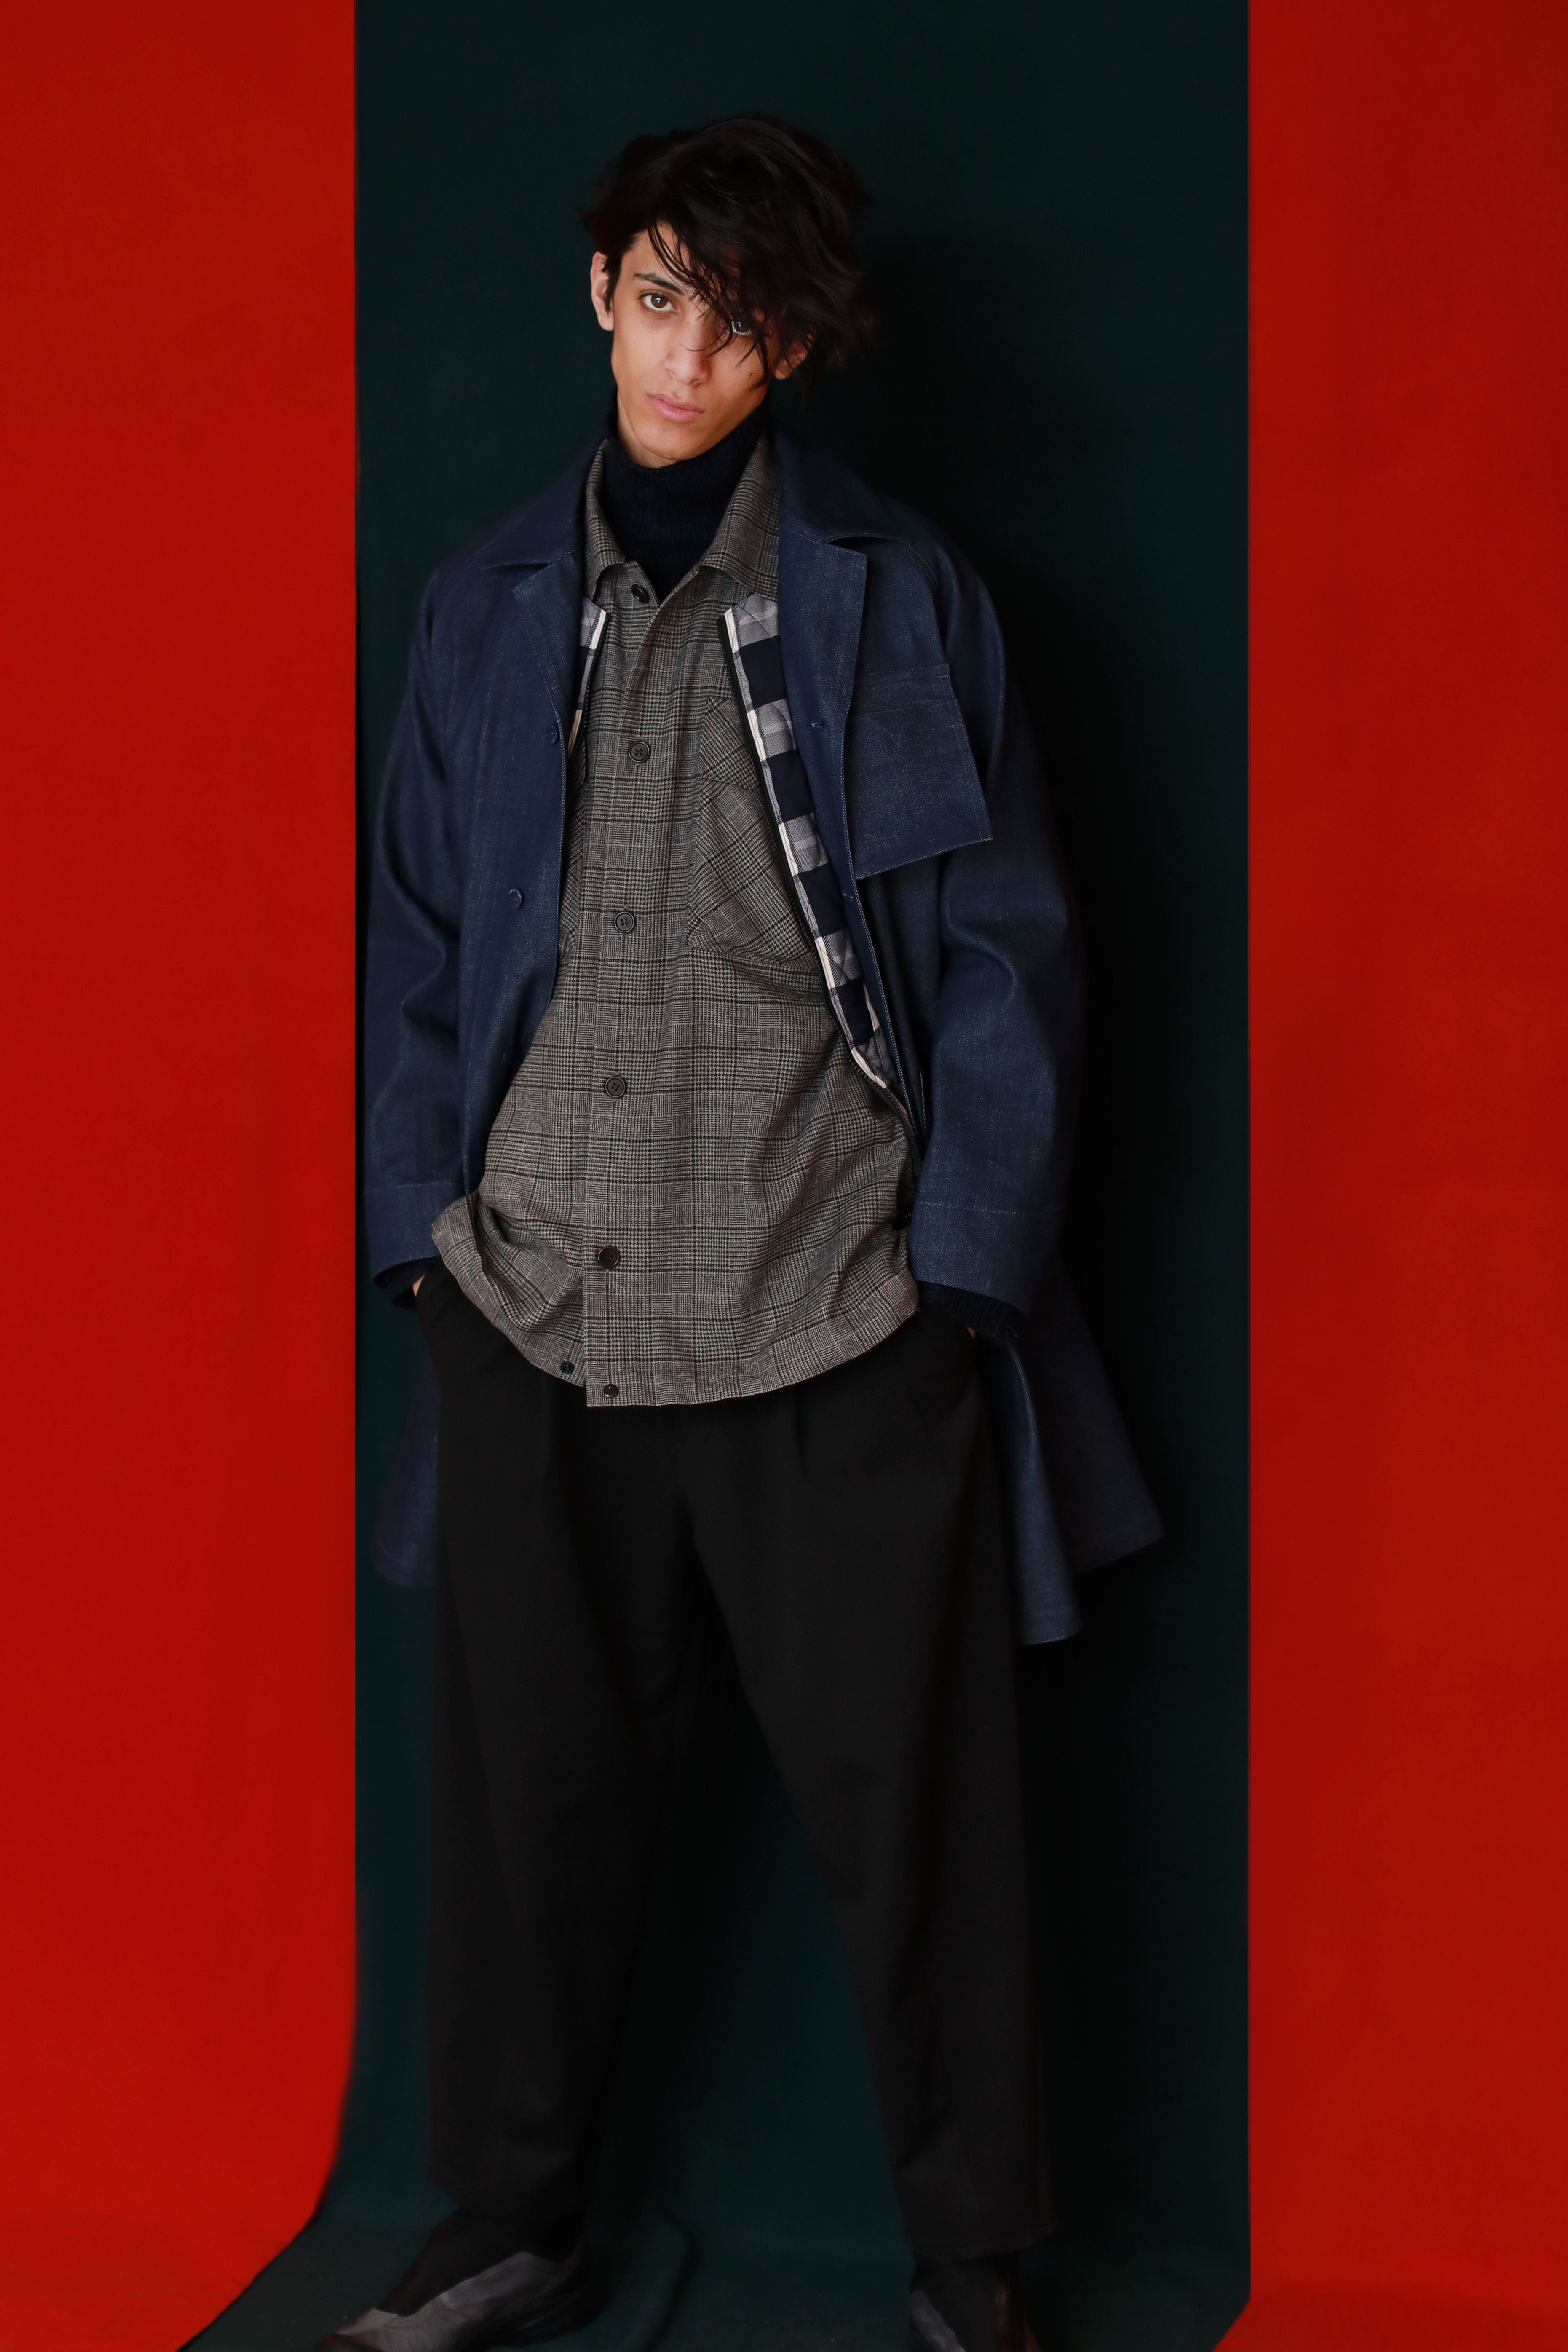 【MEN】JOHNBULL FALL WINTER 2019 COLLECTION アイテム